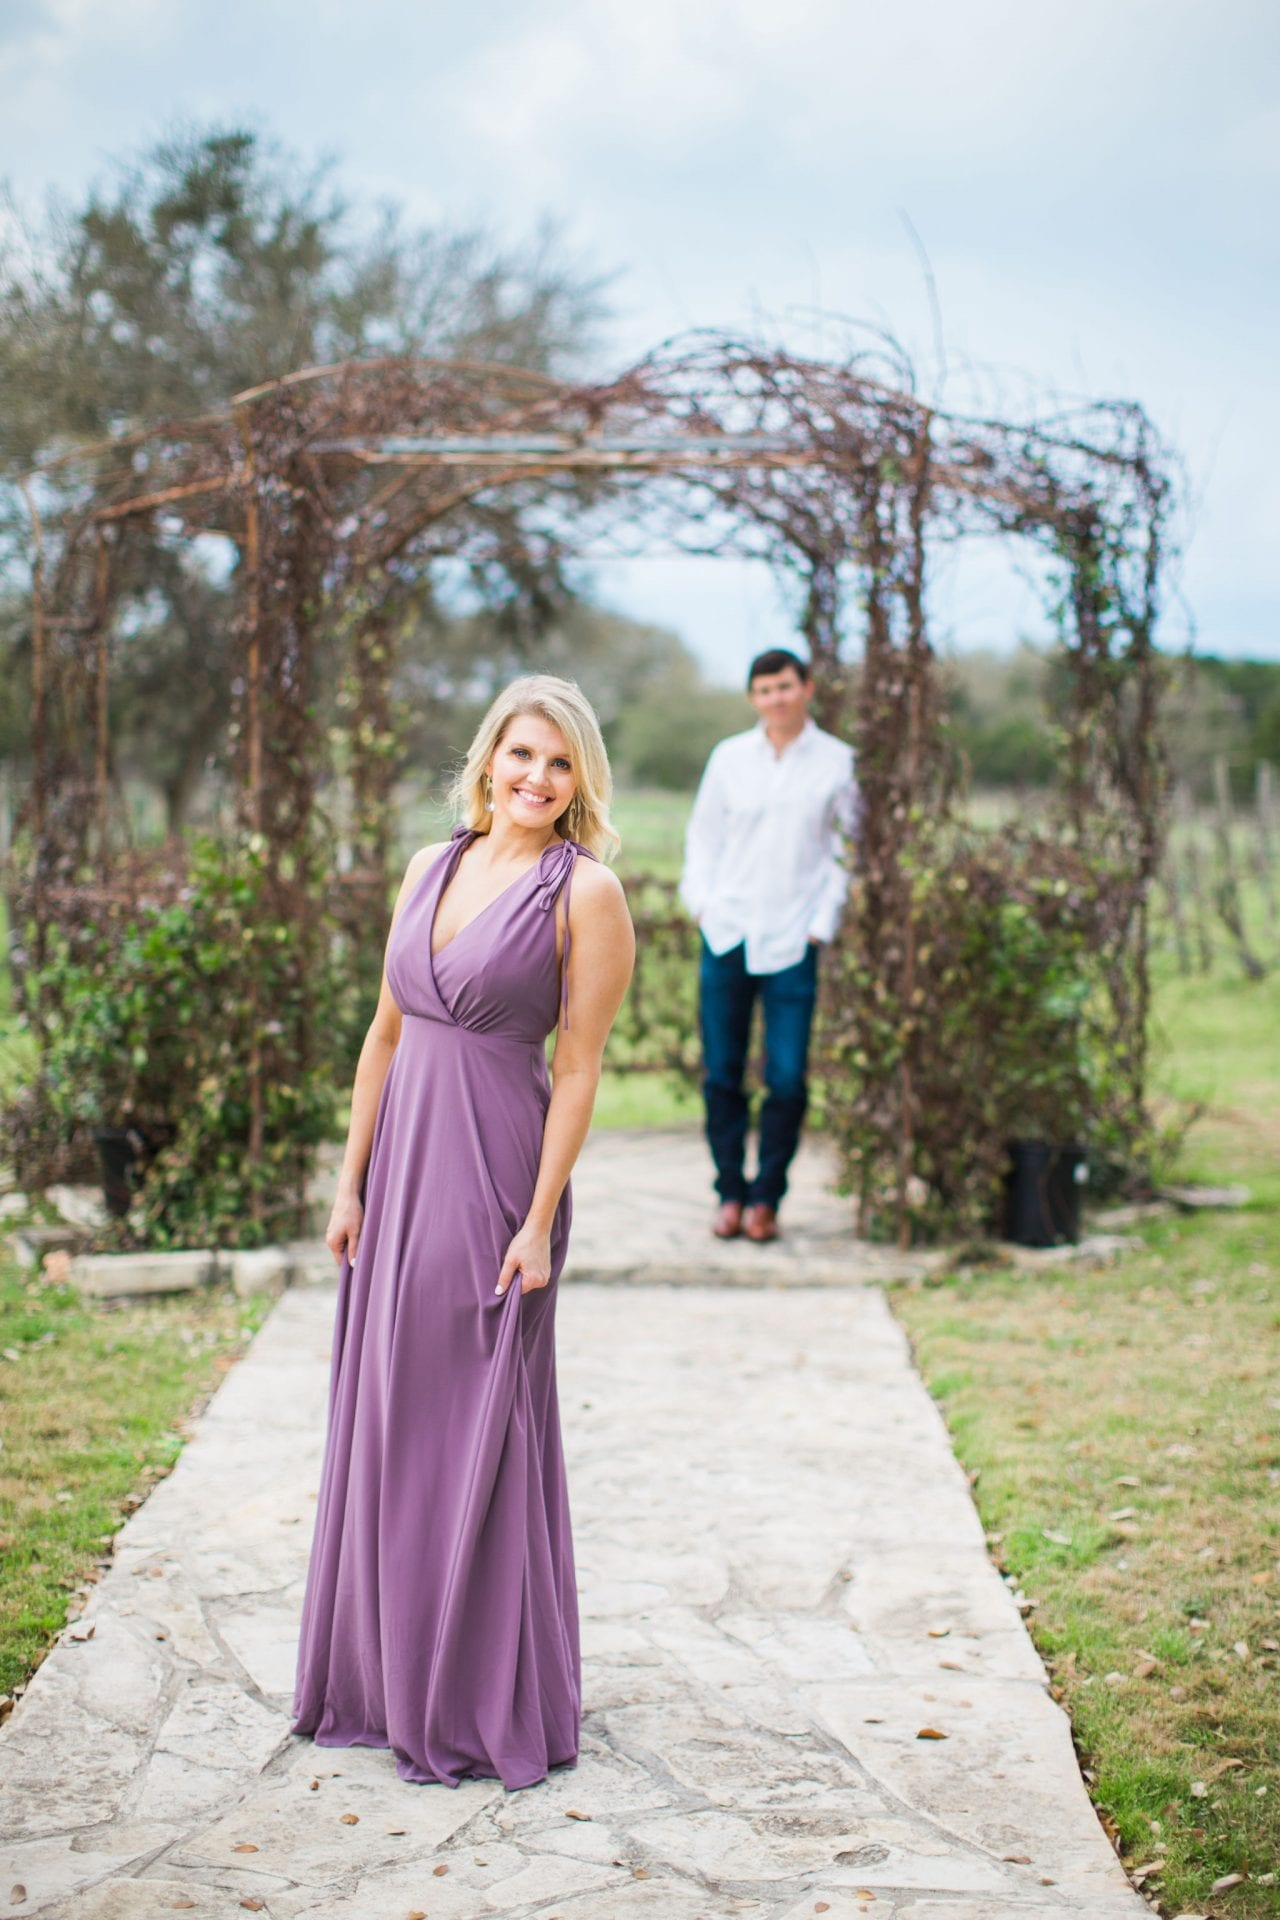 Michele Engagement session at Oak Valley Vineyards by gazebo her in front